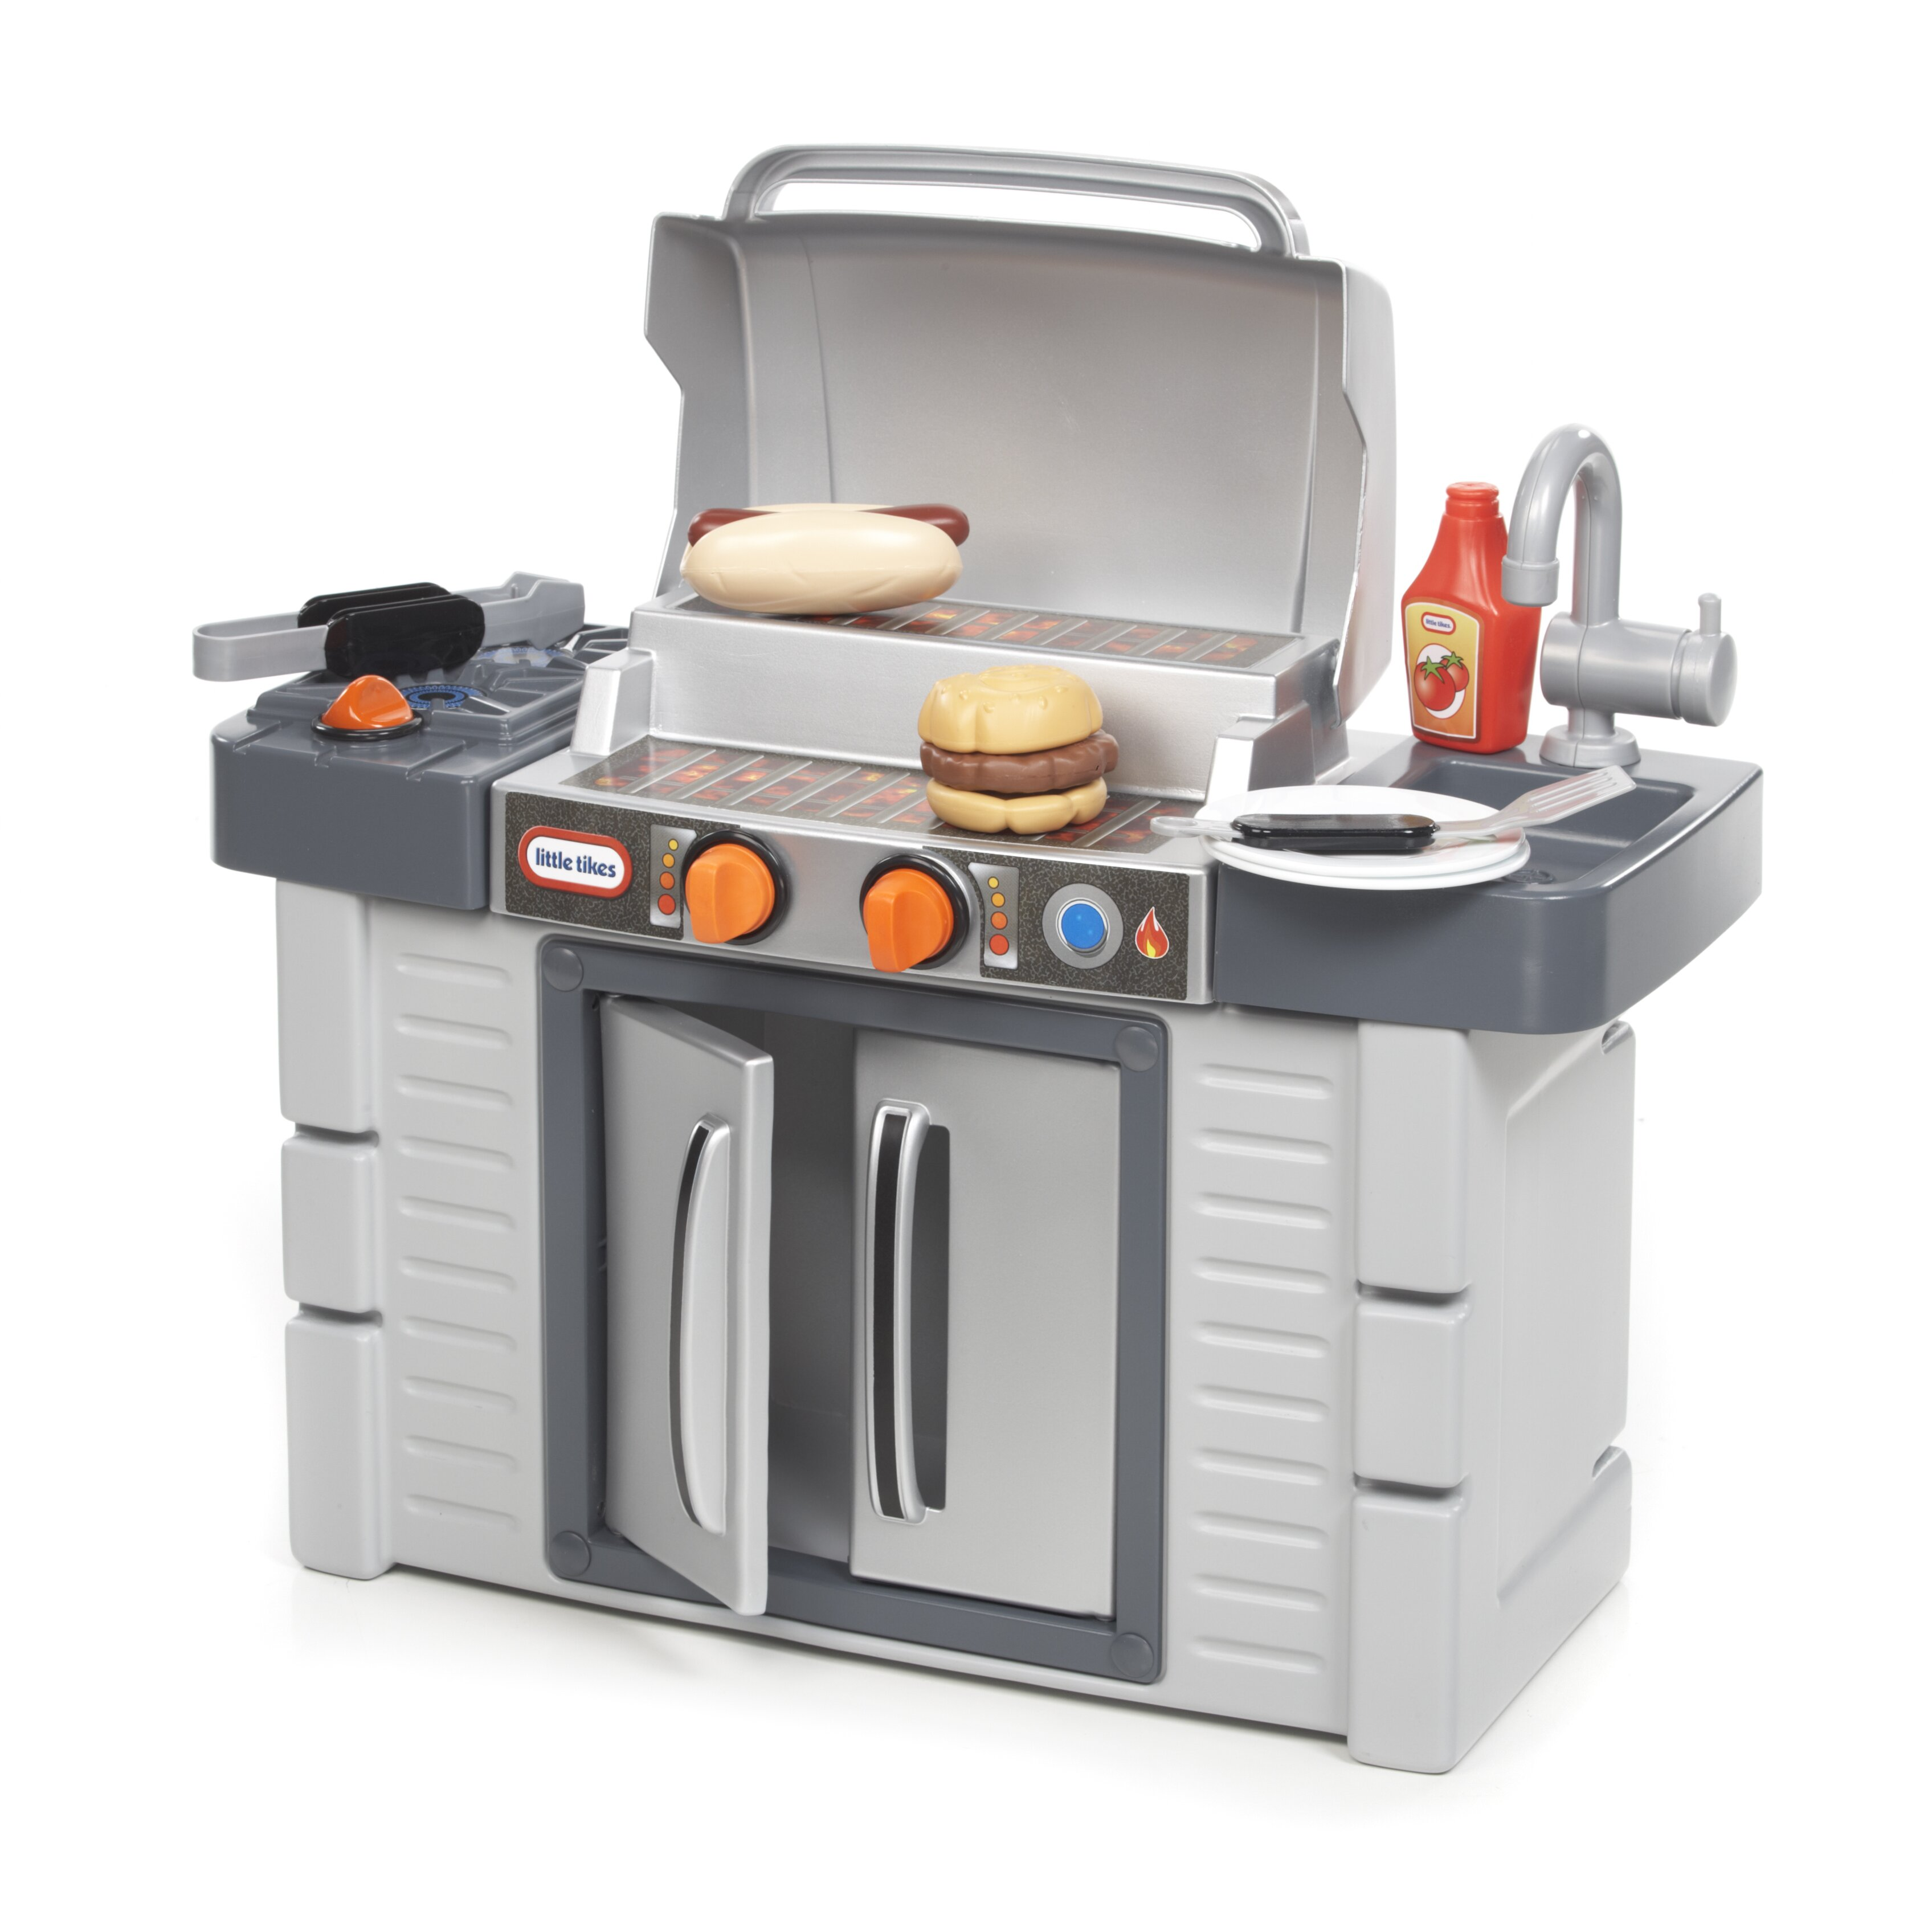 Little tikes cook 39 n grow bbq grill kitchen set reviews for Little boy kitchen set